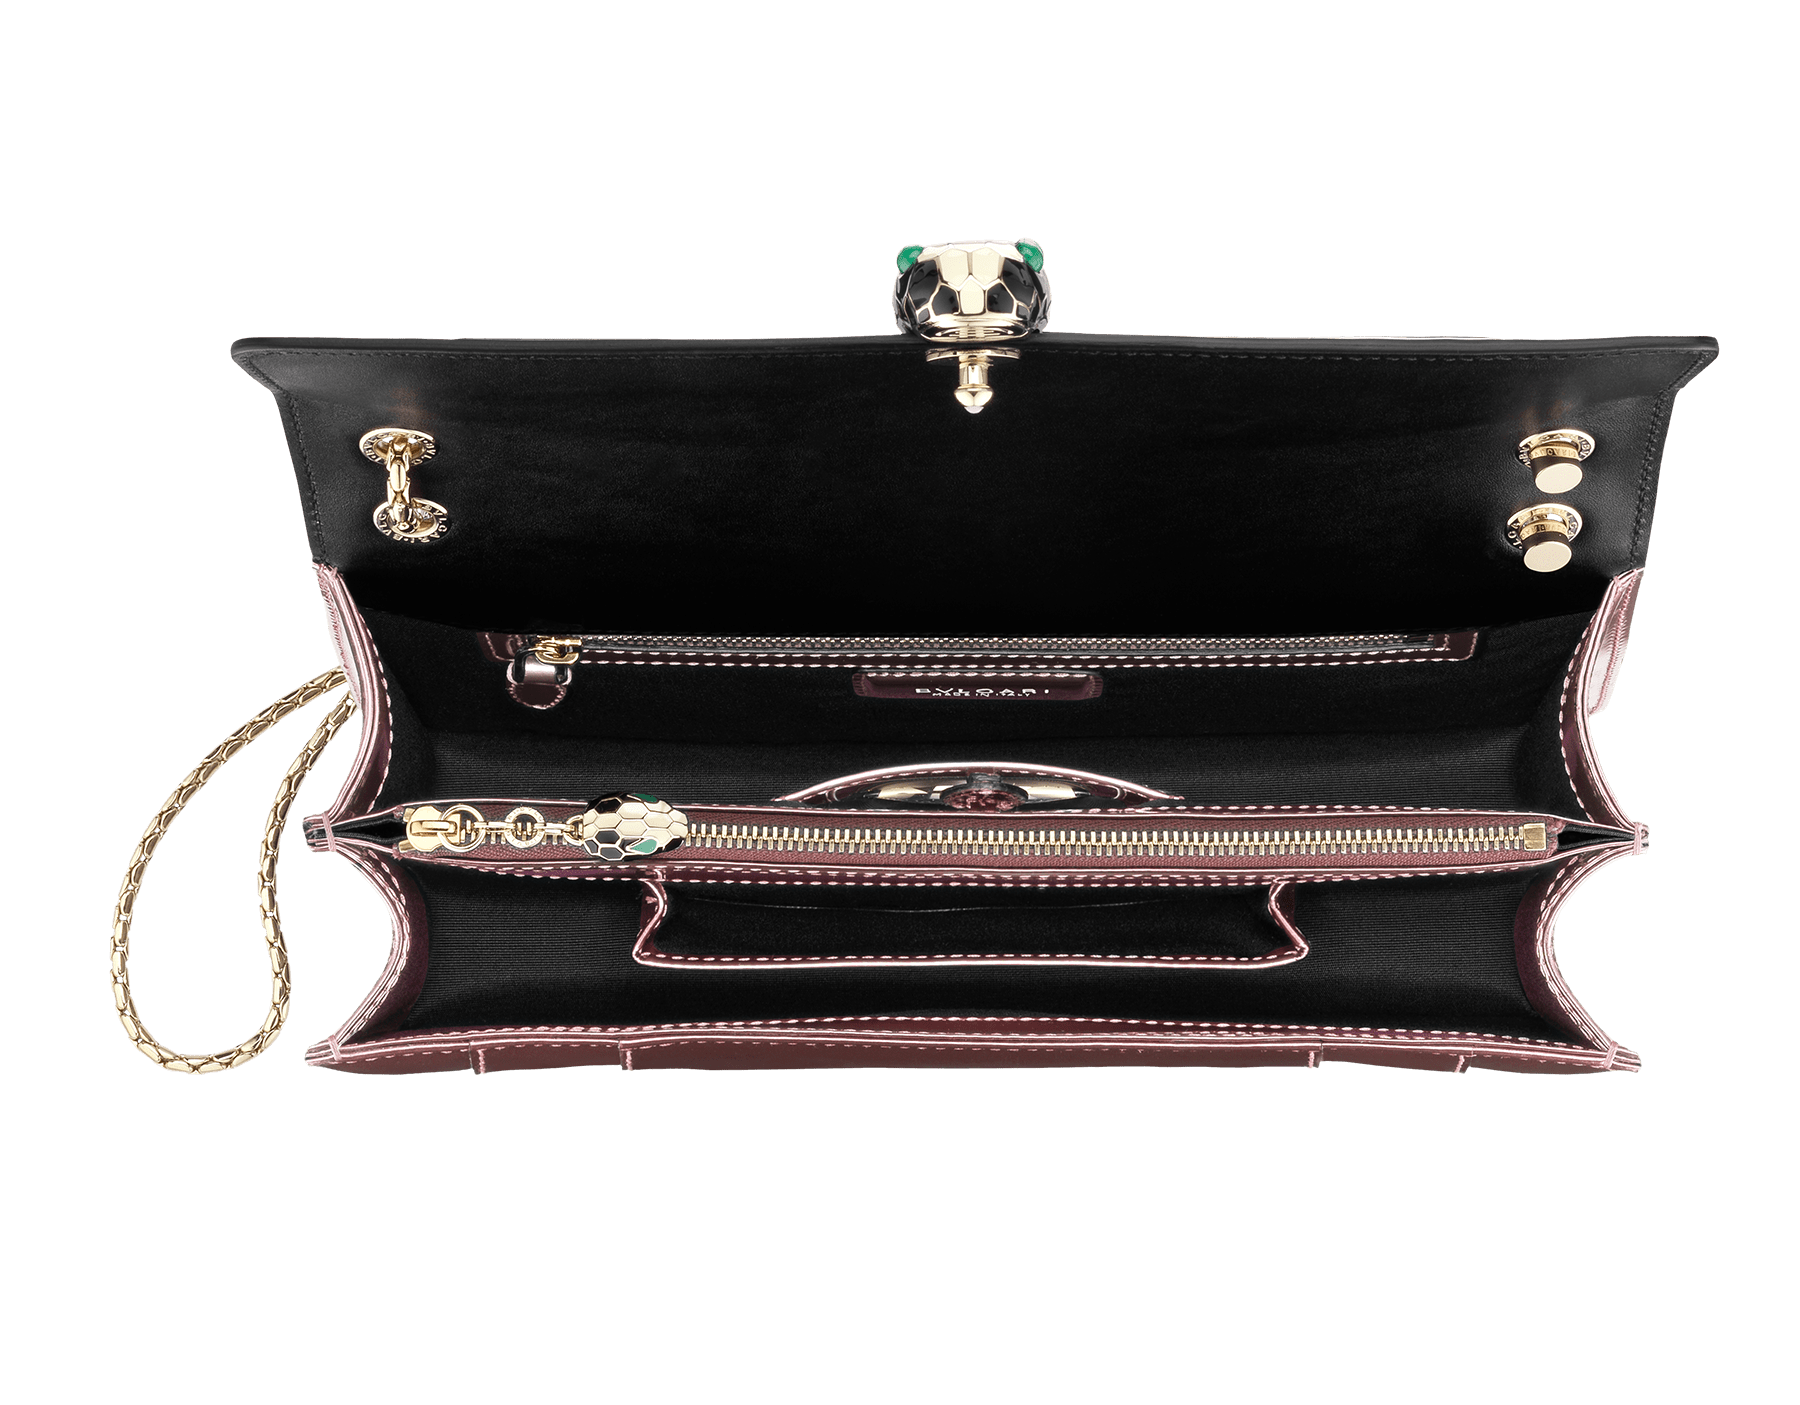 Flap cover bag Serpenti Forever in rose quartz brushed metallic calf leather. Brass light gold plated snake head closure in black and white enamel, with eyes in green malachite. 284803 image 2